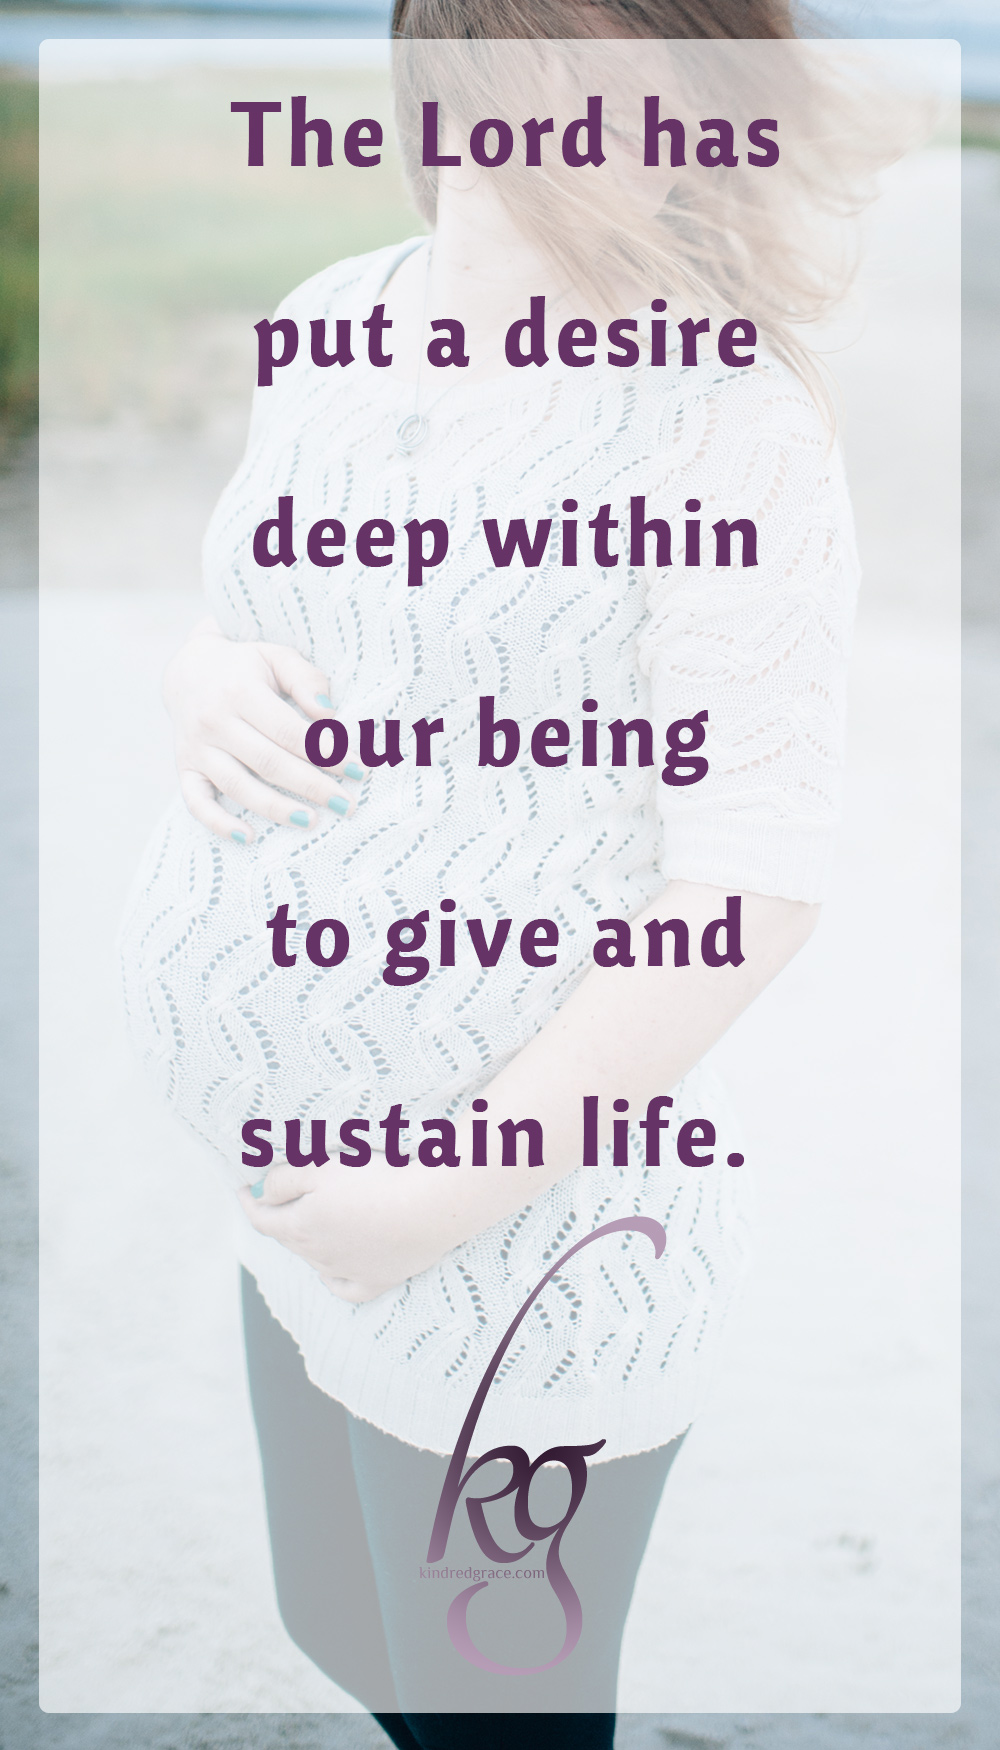 As women, the Lord has blessed us in our design. He has put a desire deep within our being to give and sustain life. That desire and physical reality displays His heart of mercy. via @KindredGrace